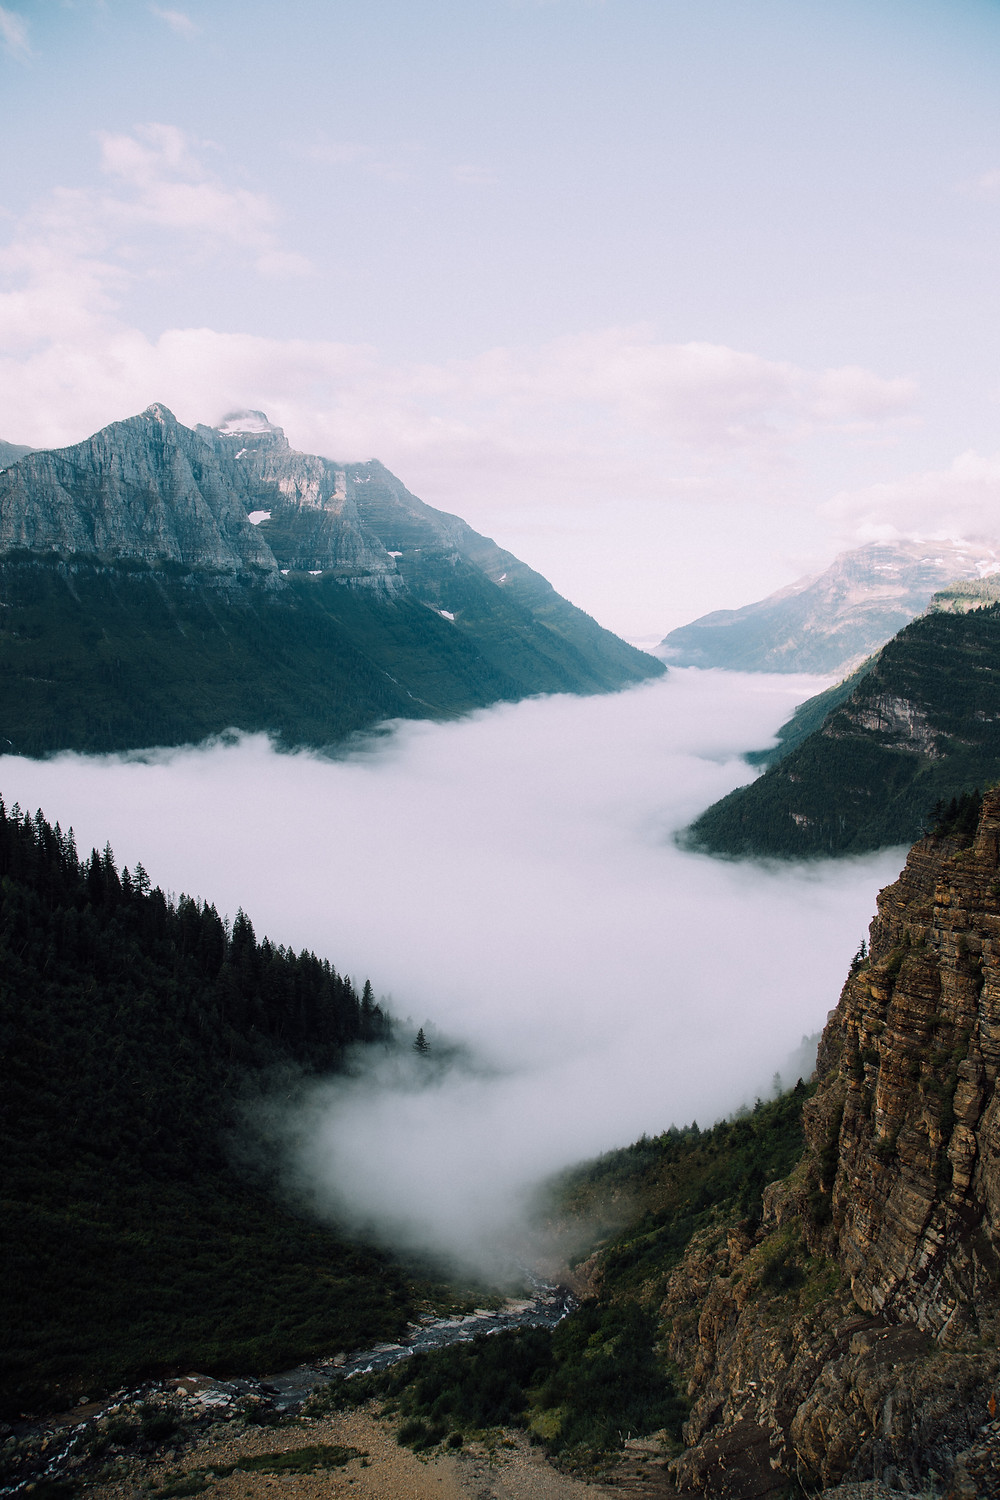 Rivers of Clouds, Glacier National Park, Montana |  Montana Adventure Photographer | Montana Photographer